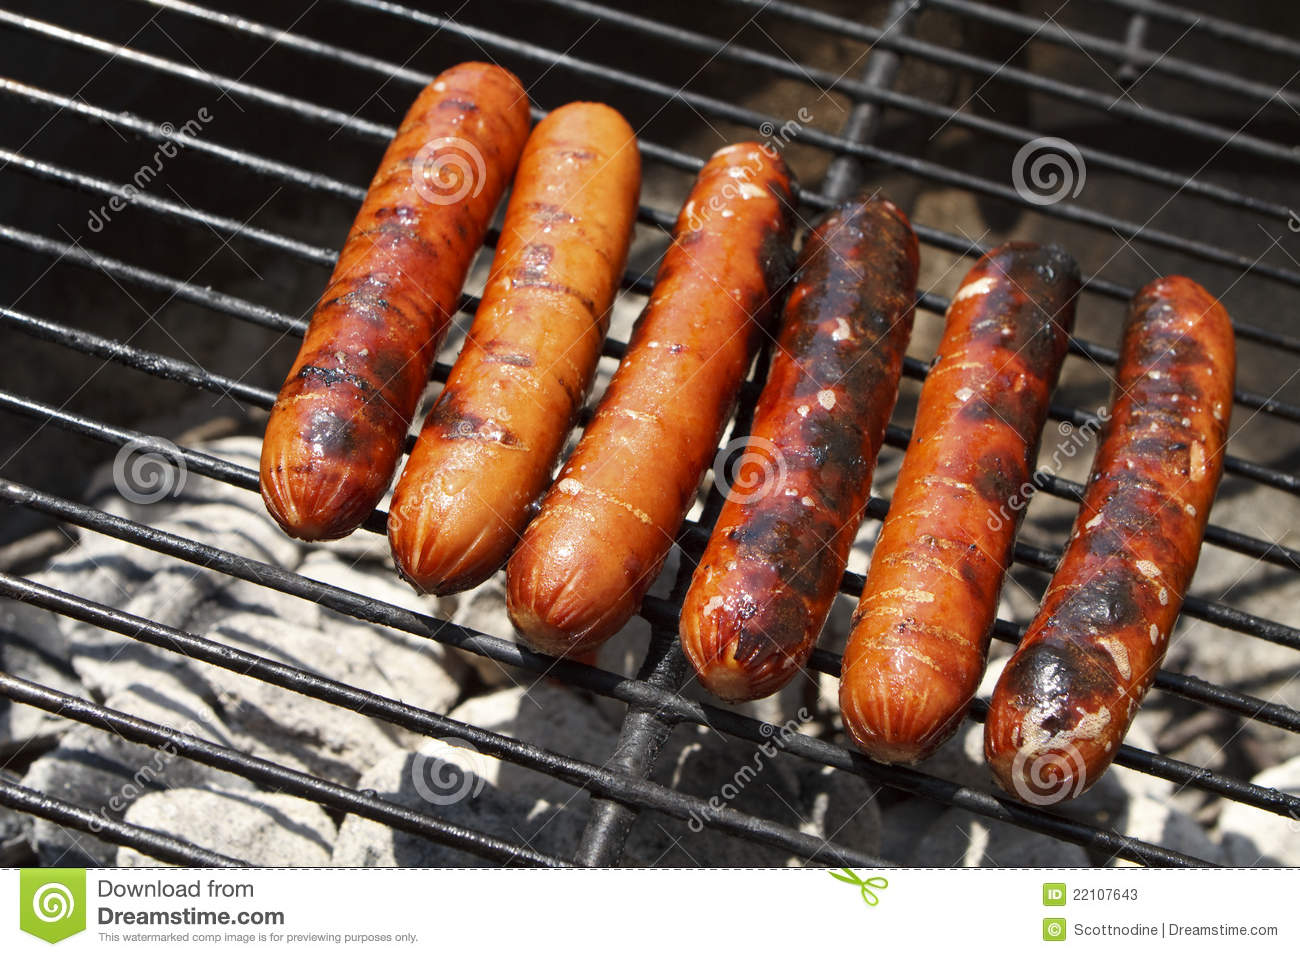 How To Grill Hot Dogs On A Charcoal Grill